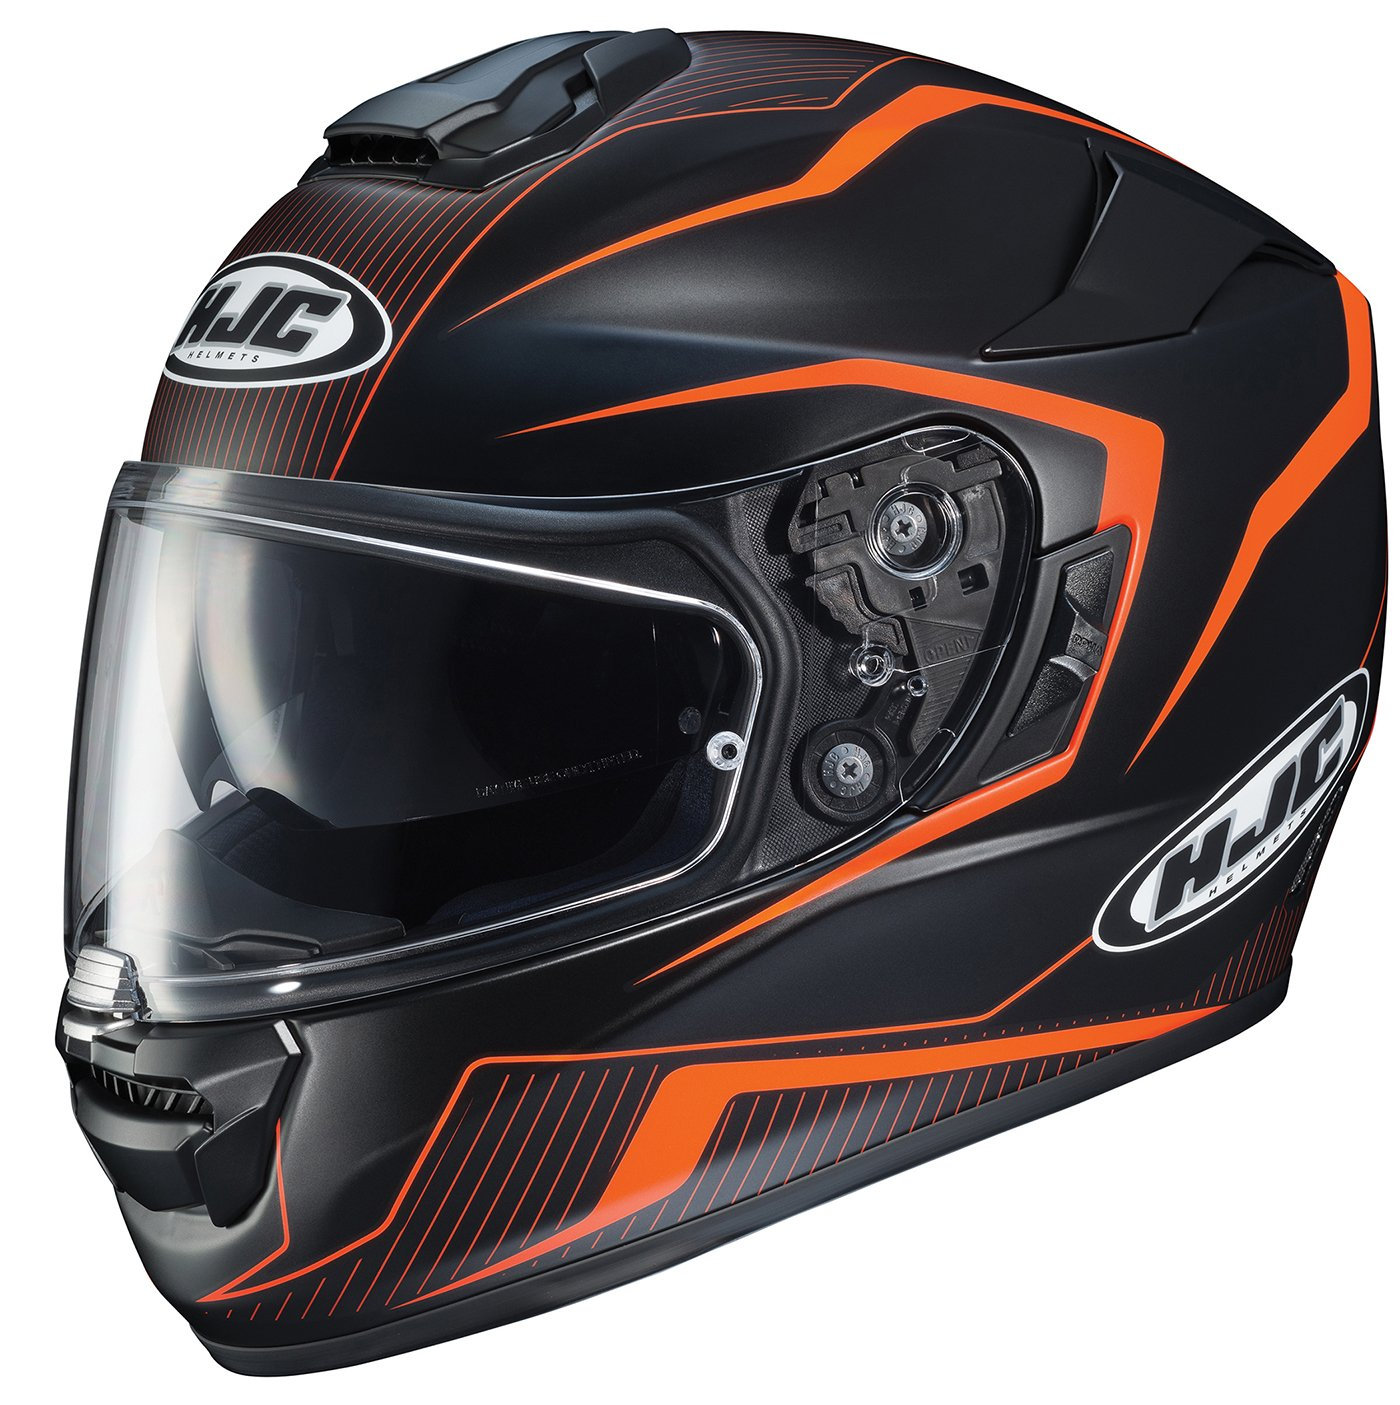 HJC Helmets 1610-774 Black//Orange Large Rpha-ST Dabin Helmet